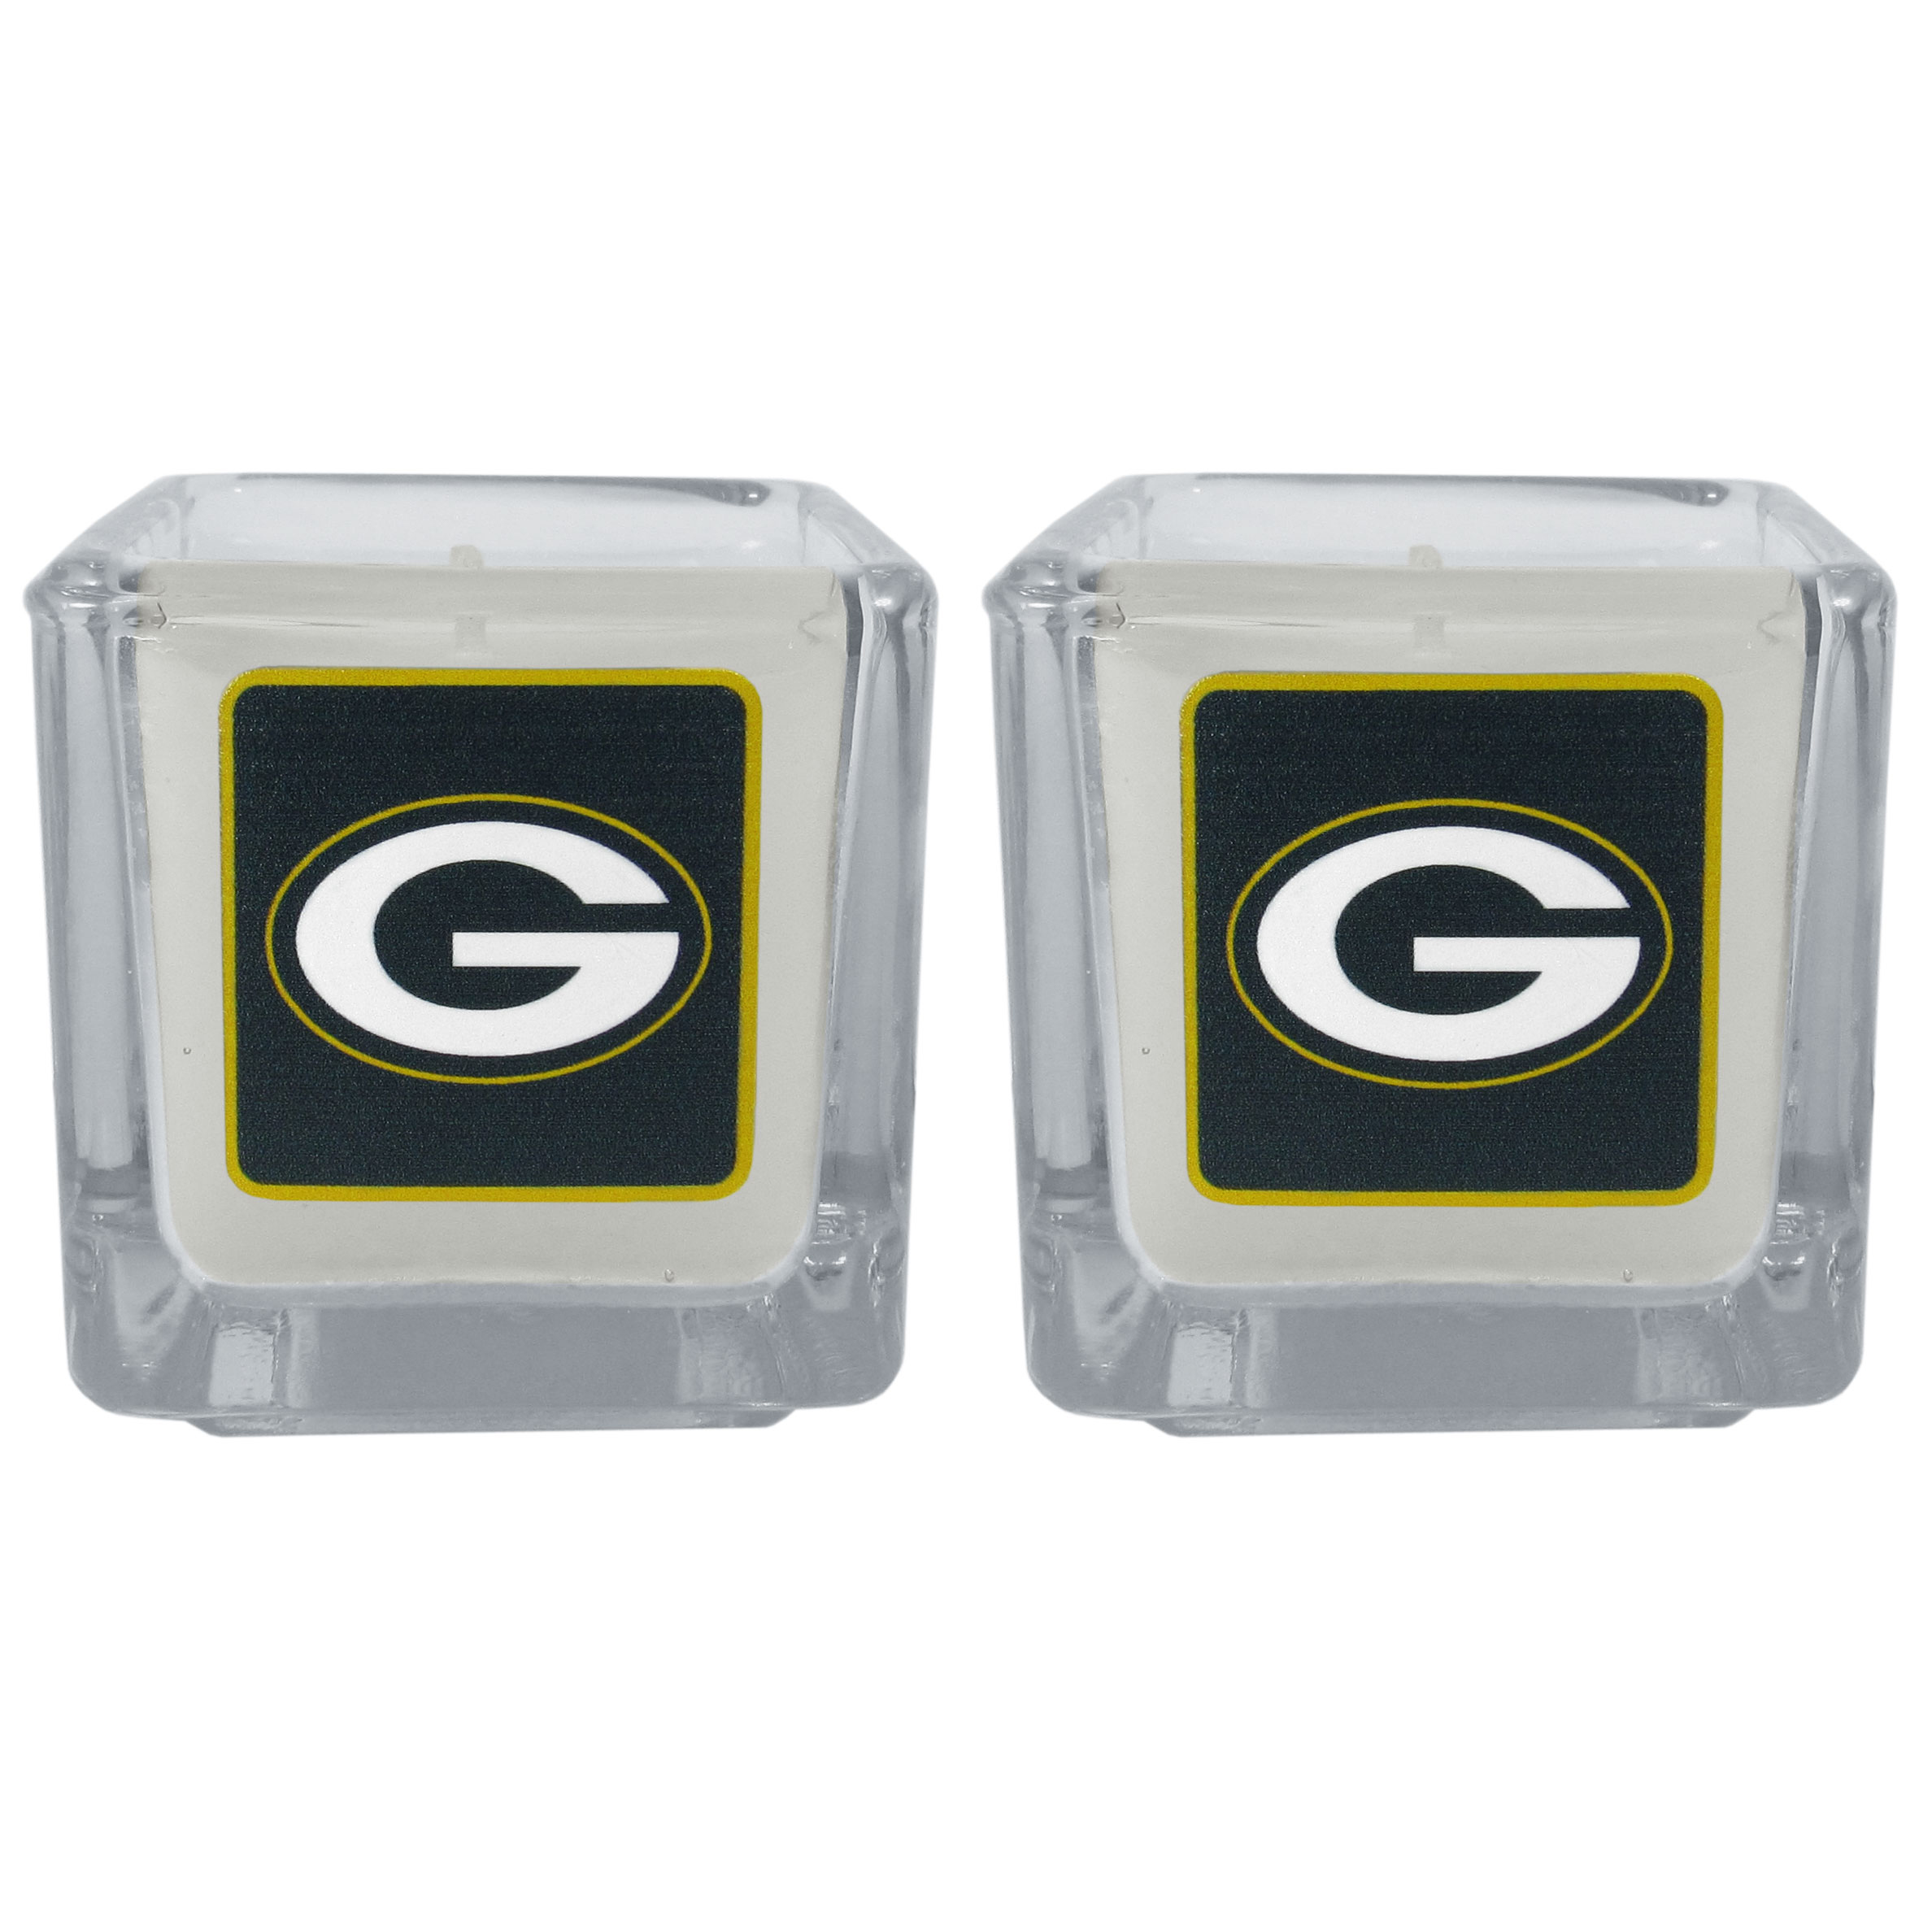 Green Bay Packers Graphics Candle Set - Our candle set features 2 lightly vanilla scented candles with the Green Bay Packers logo expertly printed on front. The candles are 2 inches tall in the votive style.